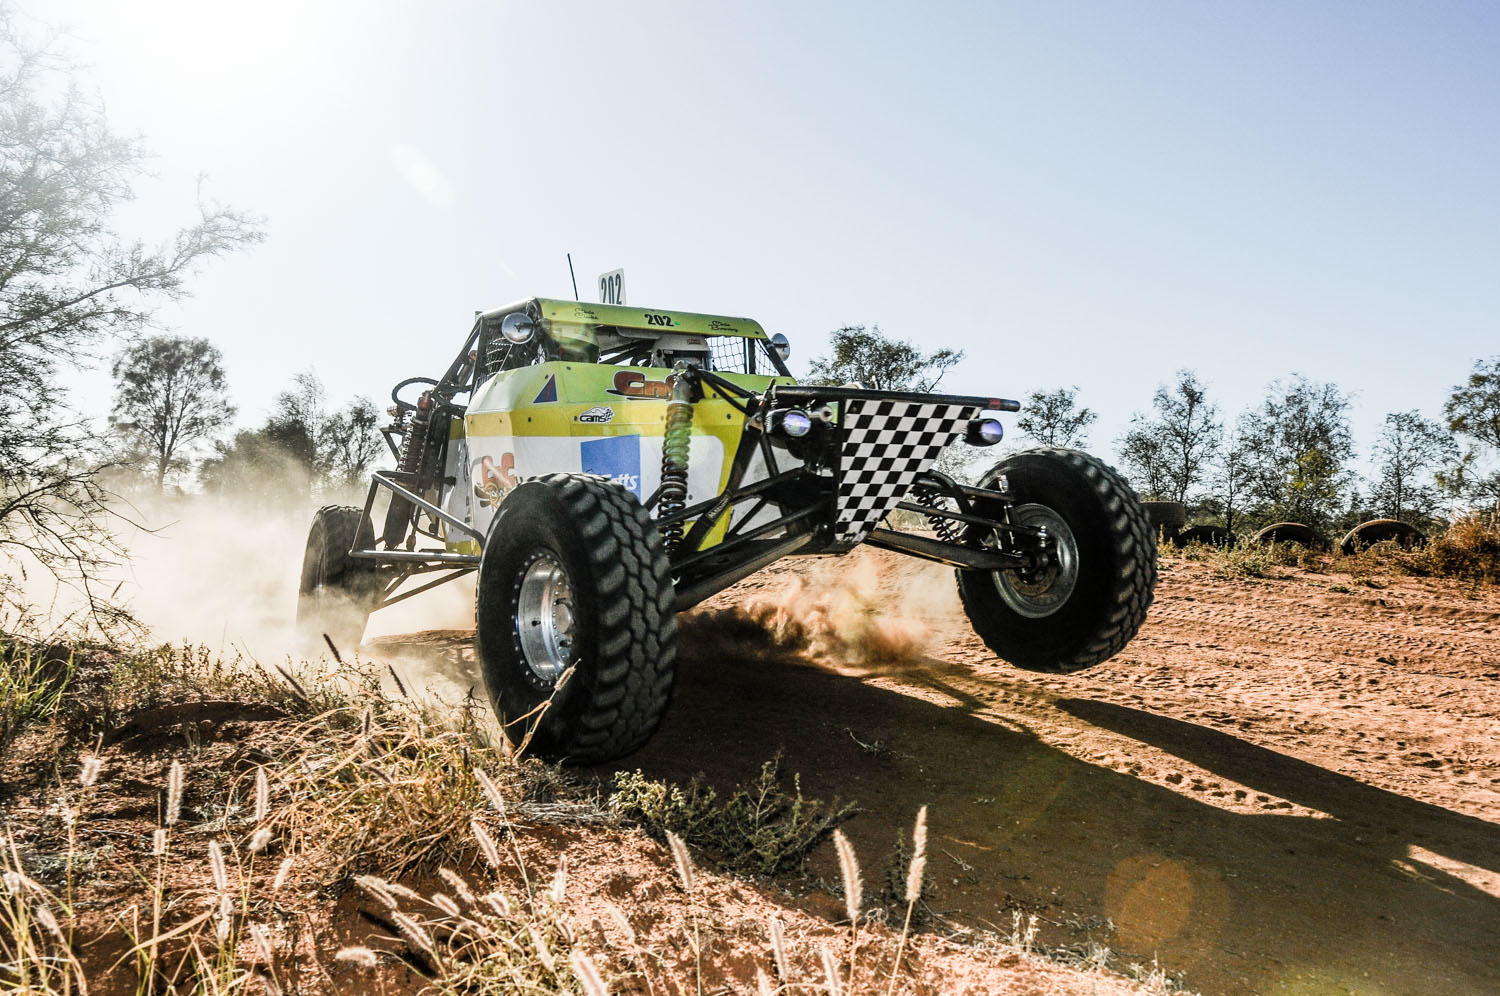 Chris Browning on the charge in his Super1650 Lothringer